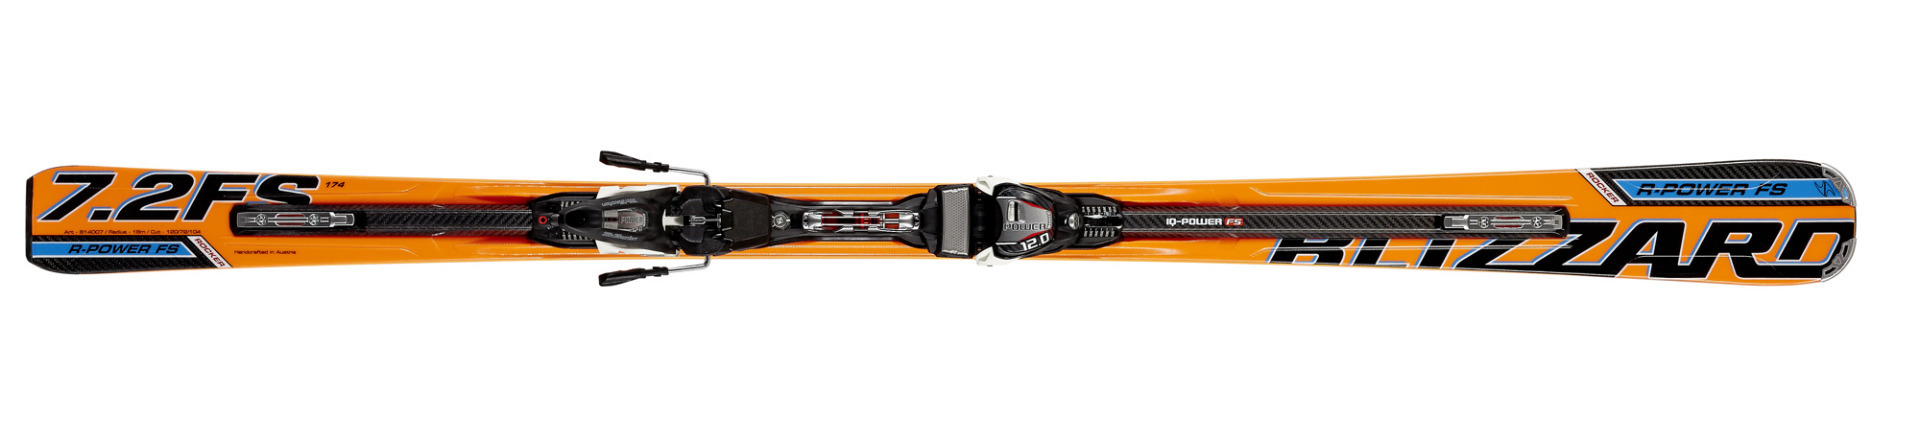 ISPO 2013: Low Weight, High Performance is the Trend for 2014 Ski Gear